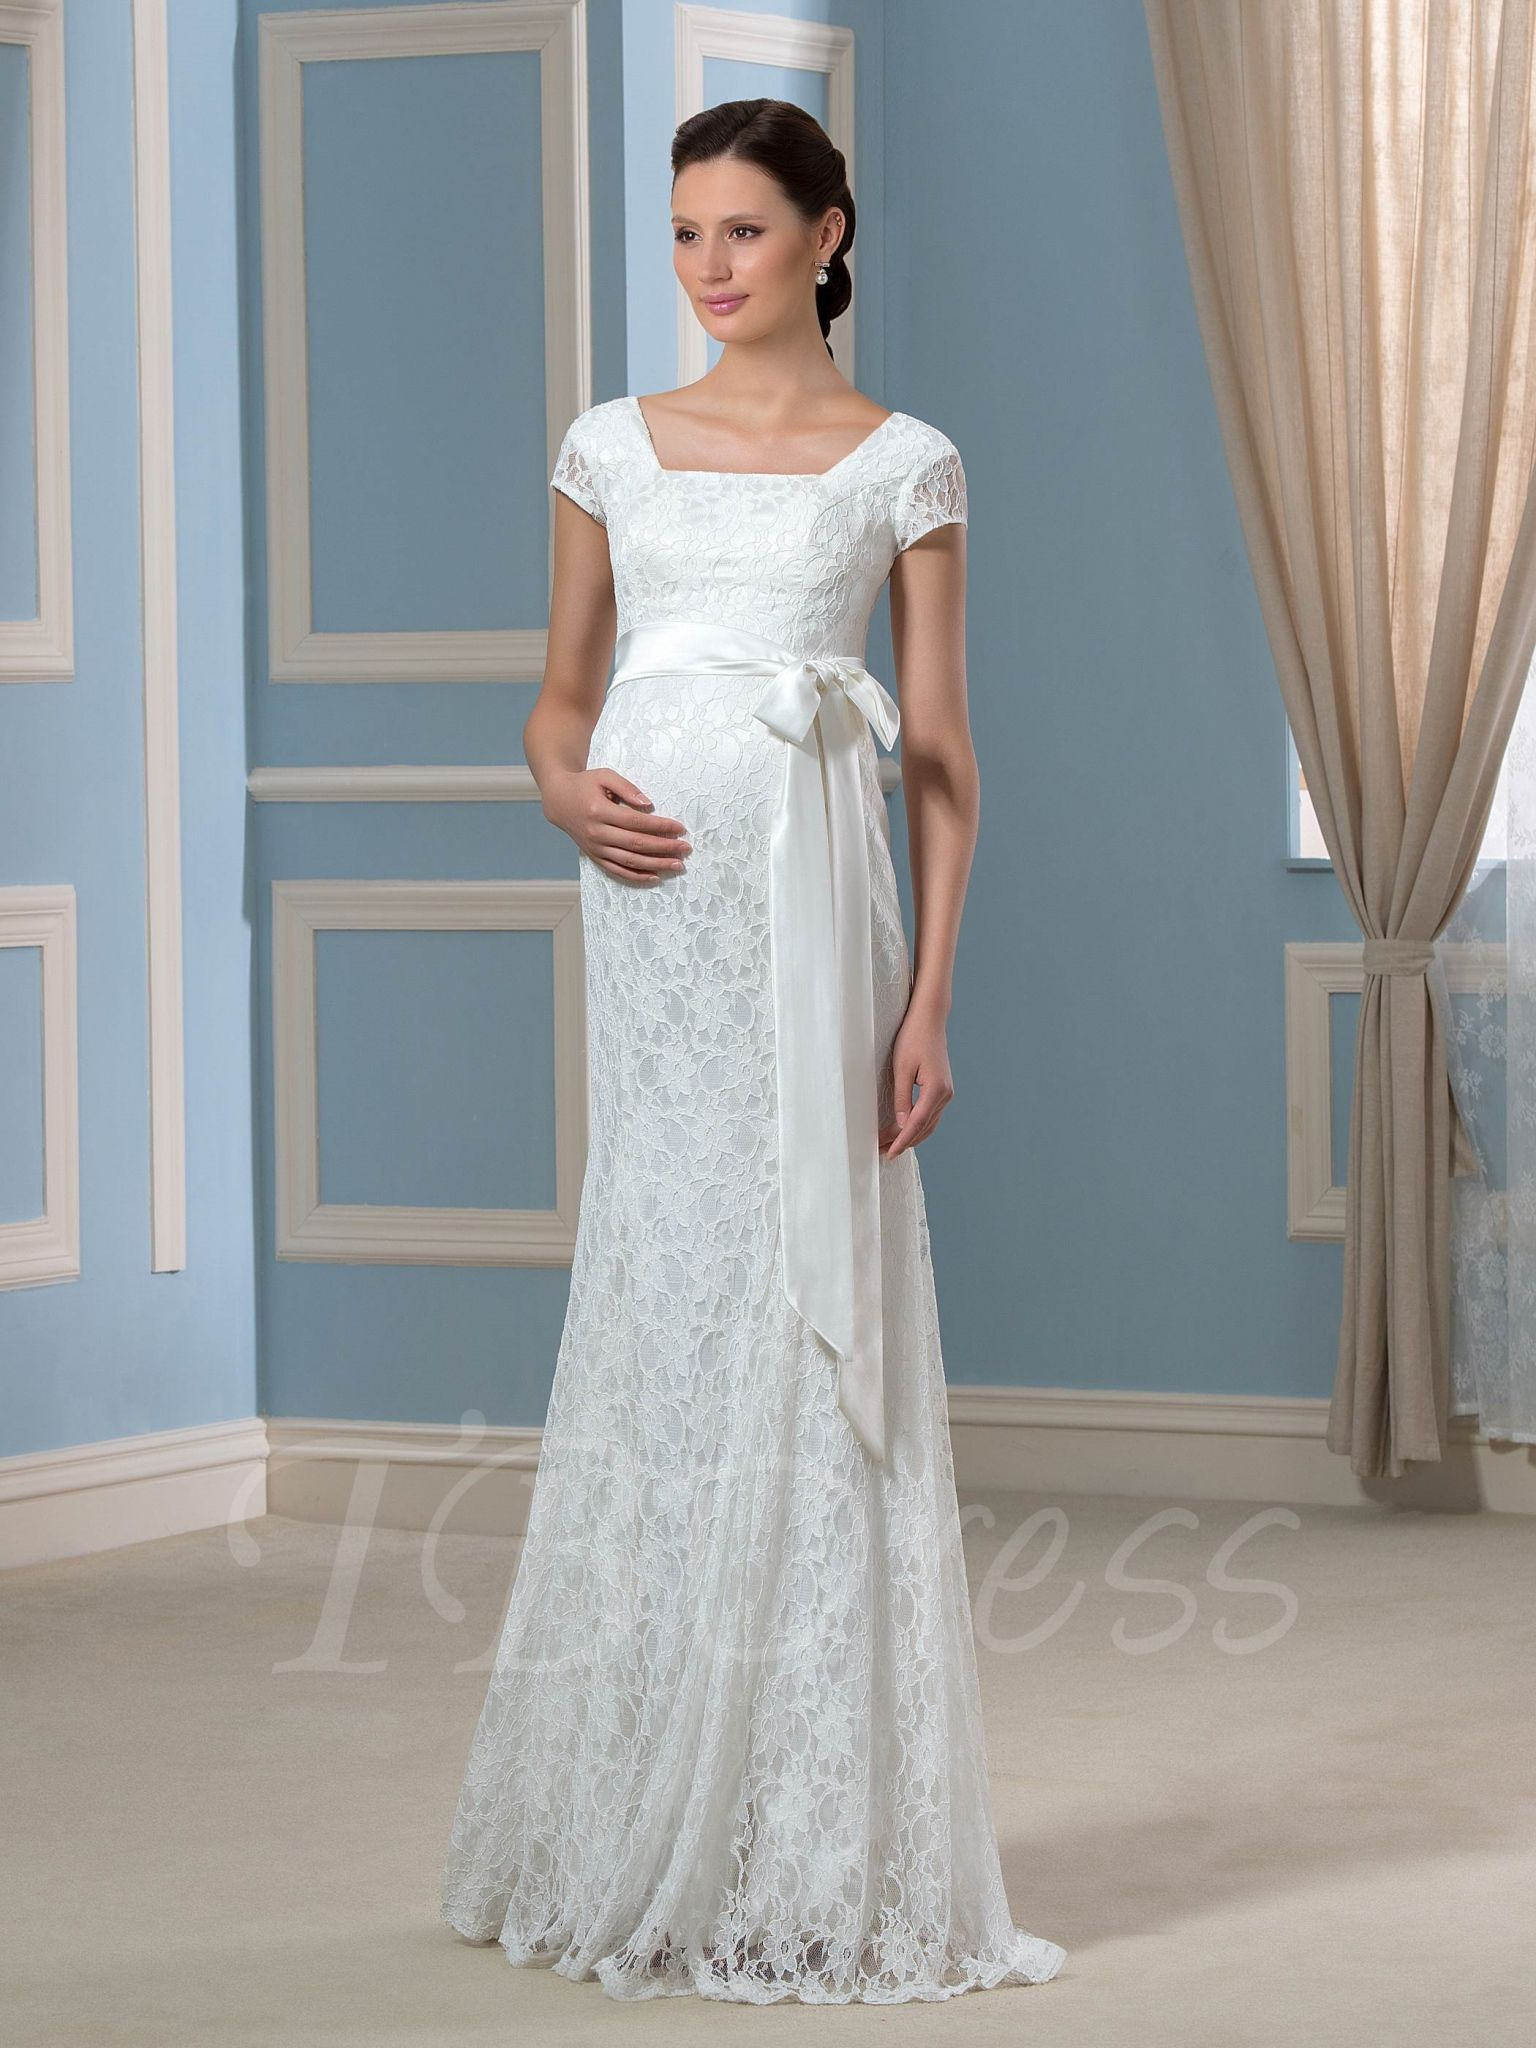 Wedding Dress for Pregnant Bride - Wedding Dresses for Cheap Check ...